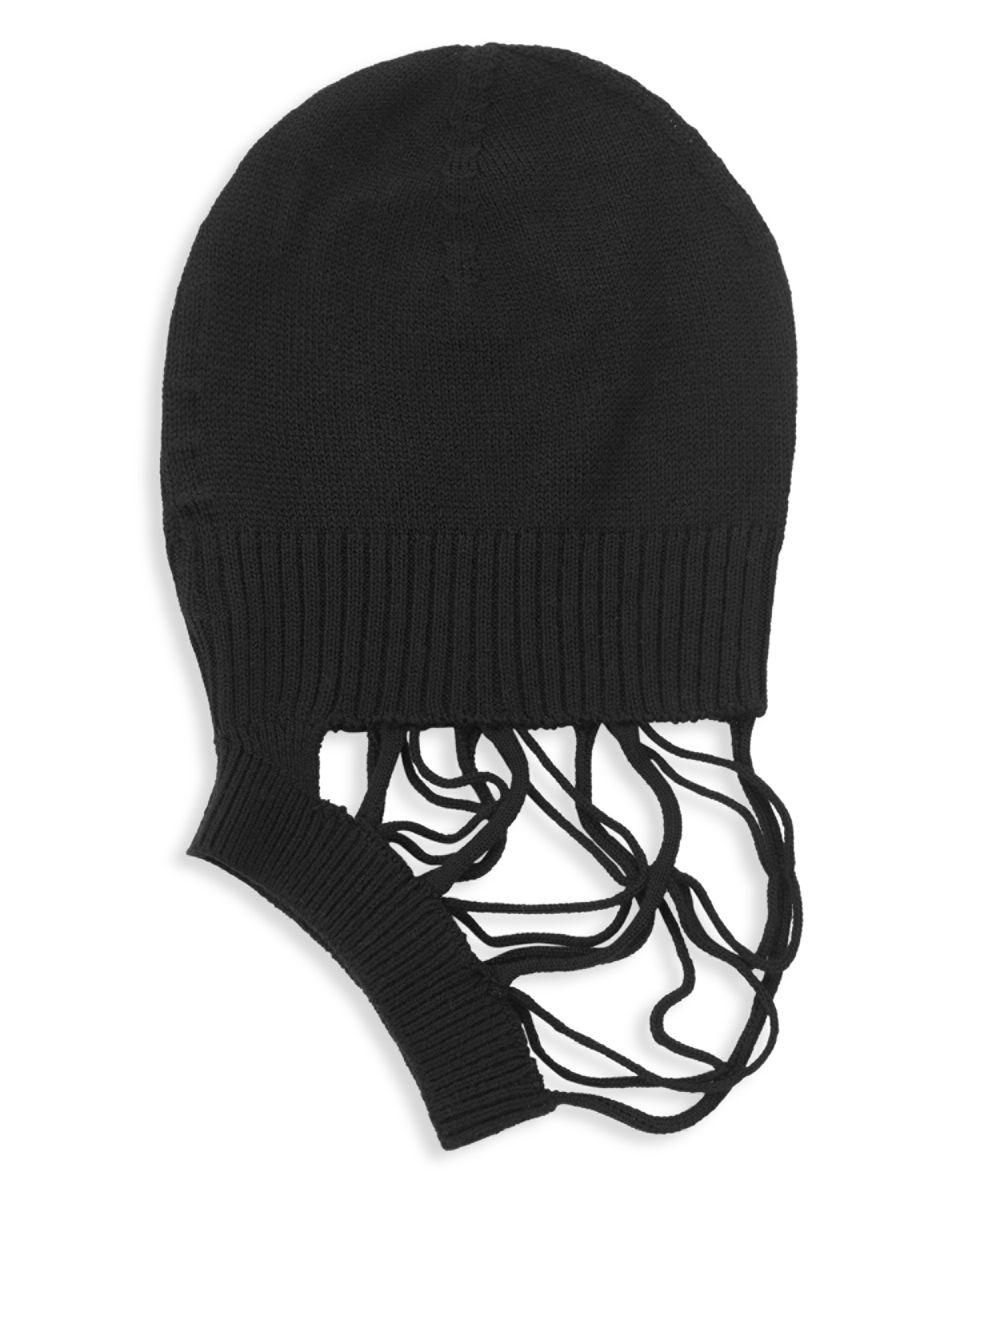 b23a44991b654 Rick Owens Fishnet Front Beanie in Black for Men - Lyst